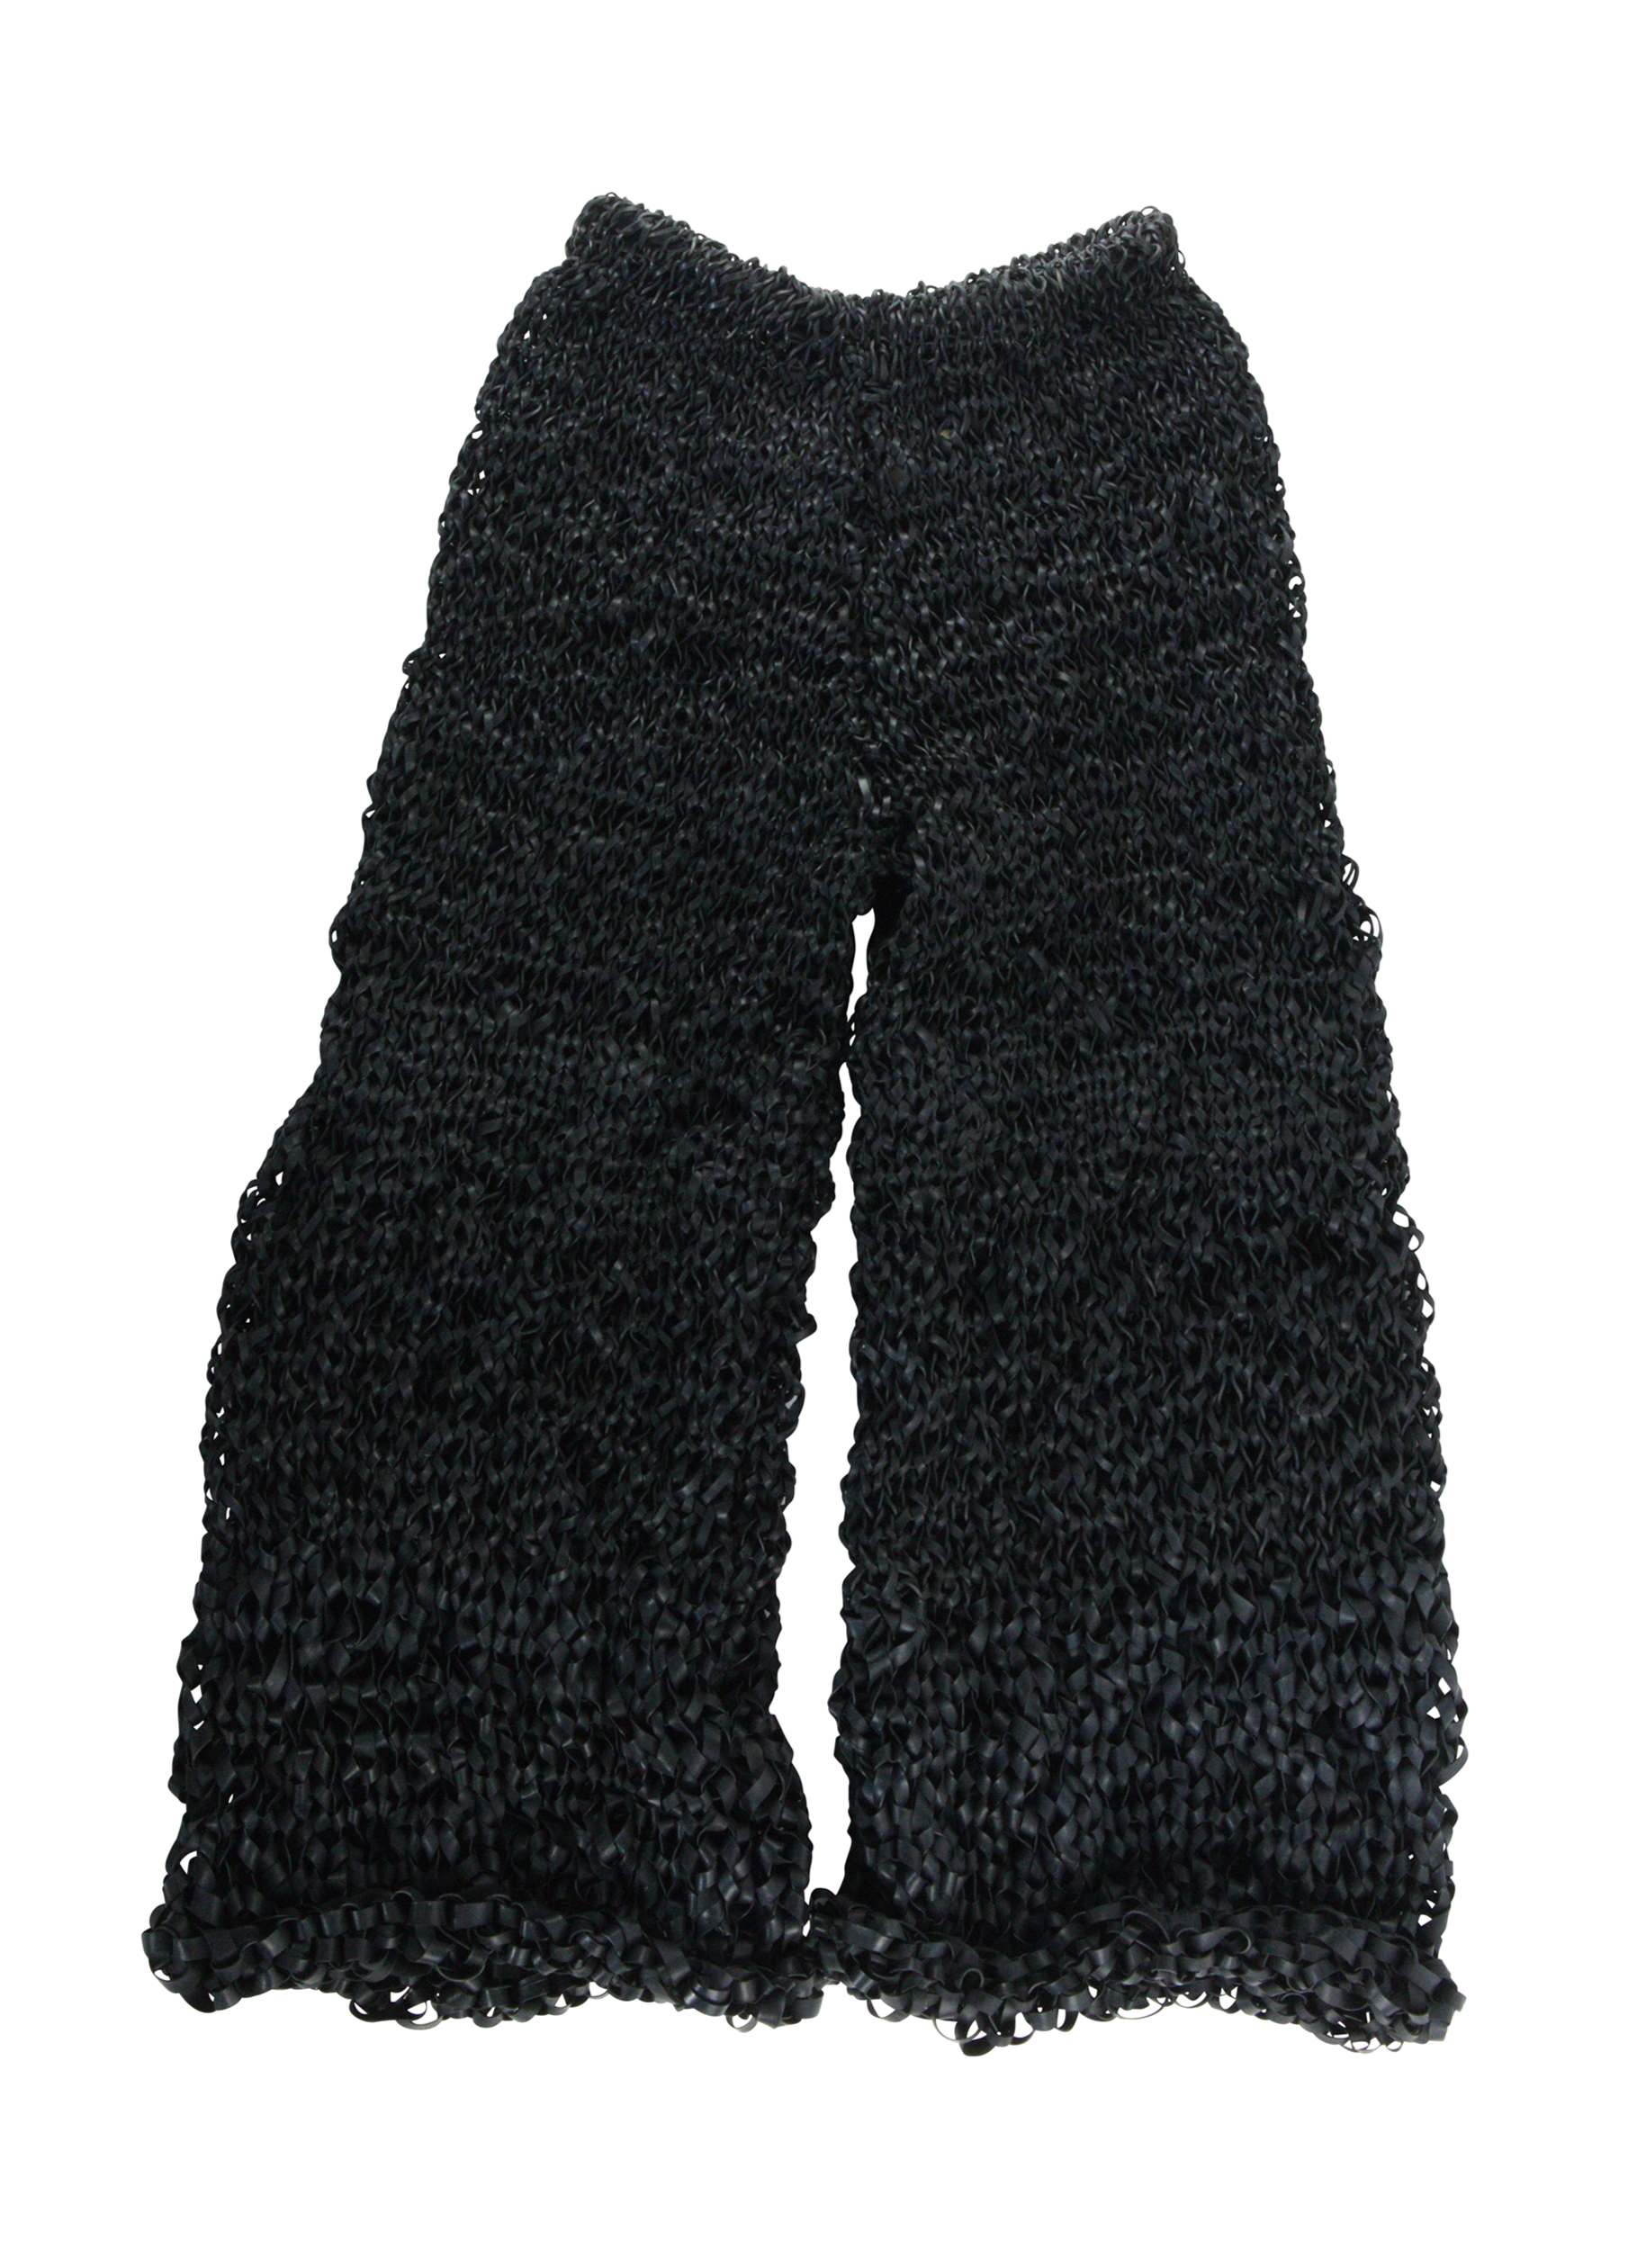 Handmade Crochet Rubber Trousers